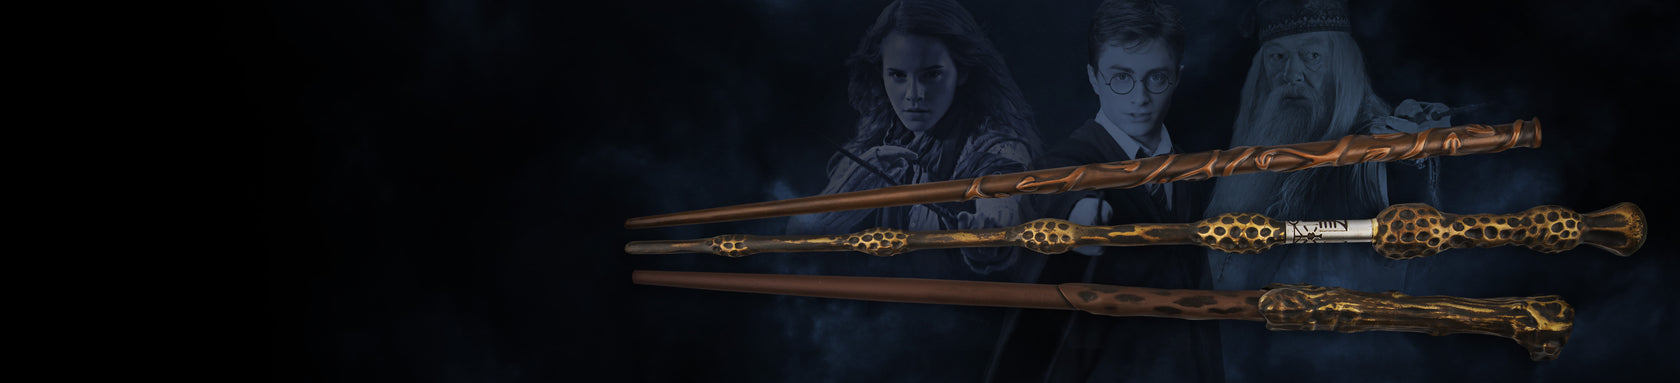 Wand Pen Hermione Granger Harry Potter Albus Dumbledore